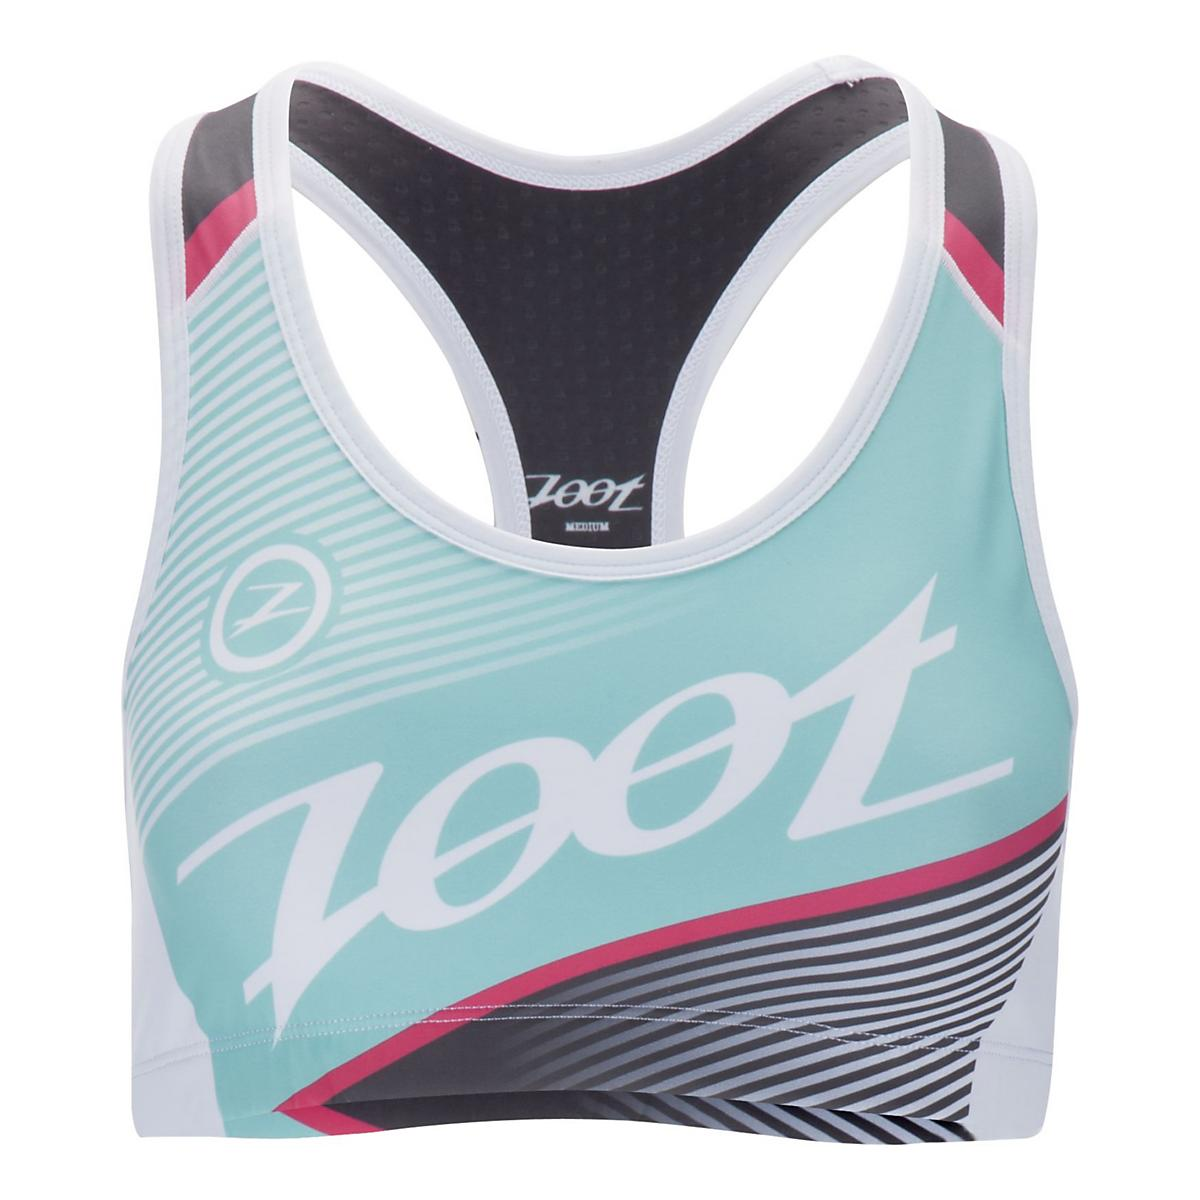 Women's Zoot�Run Team Bra